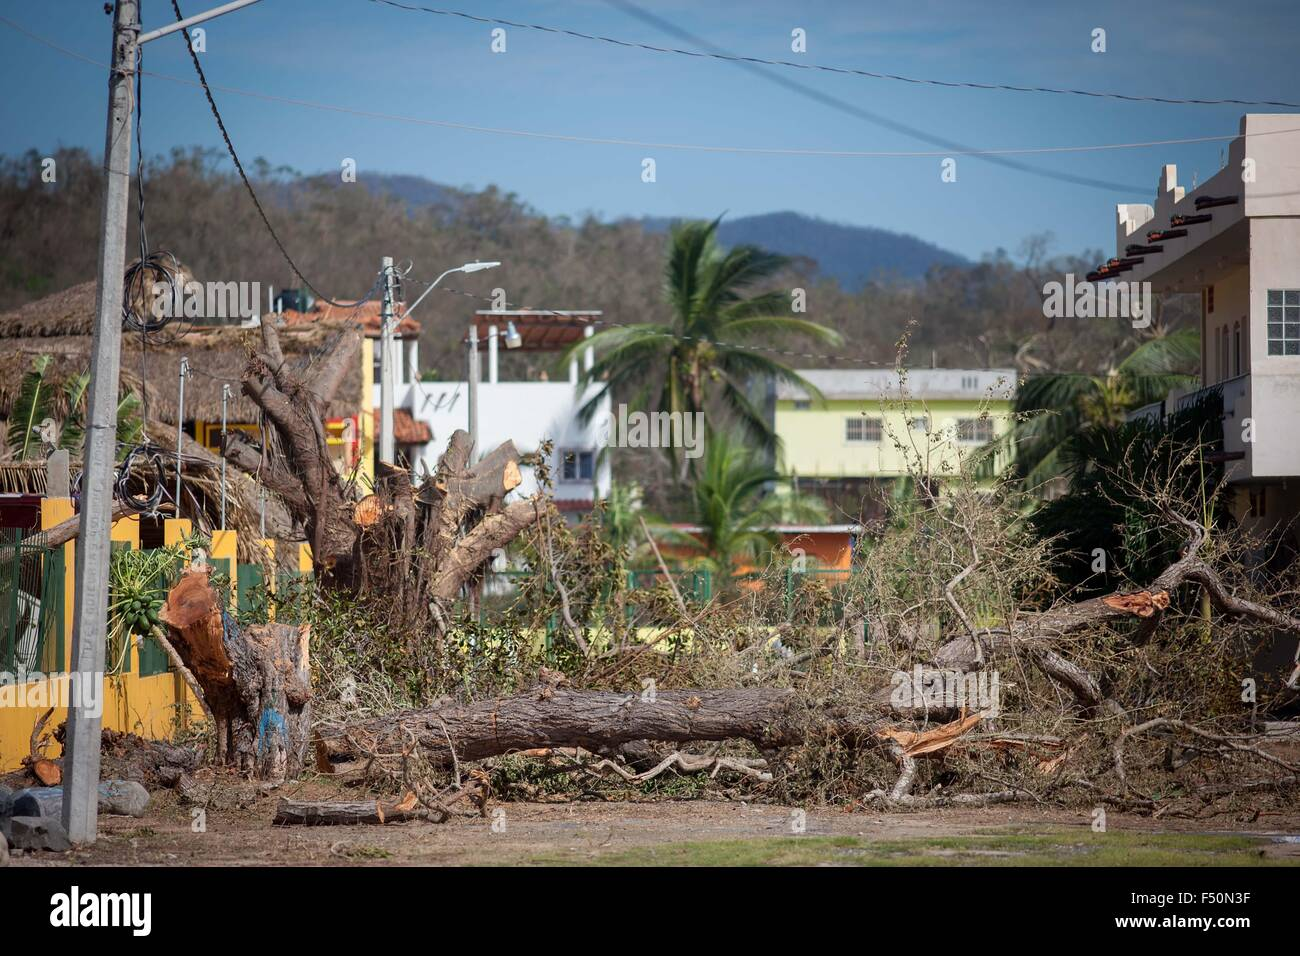 San Patricio Melaque Mexico 25th Oct 2015 Fallen Trees Are Seen